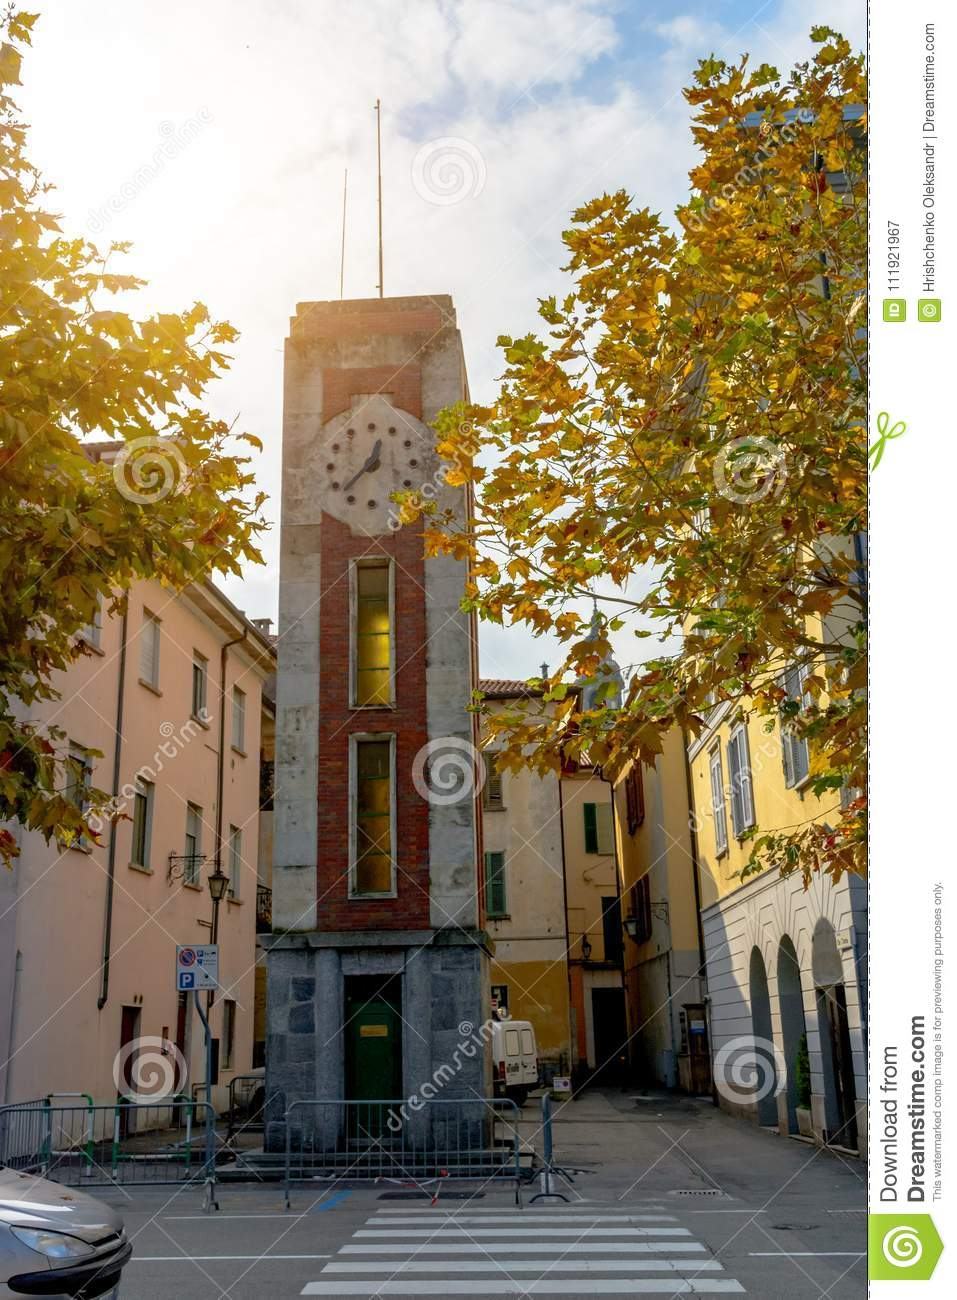 Ancient Clock Tower In Italy , Arona  Stock Image - Image of